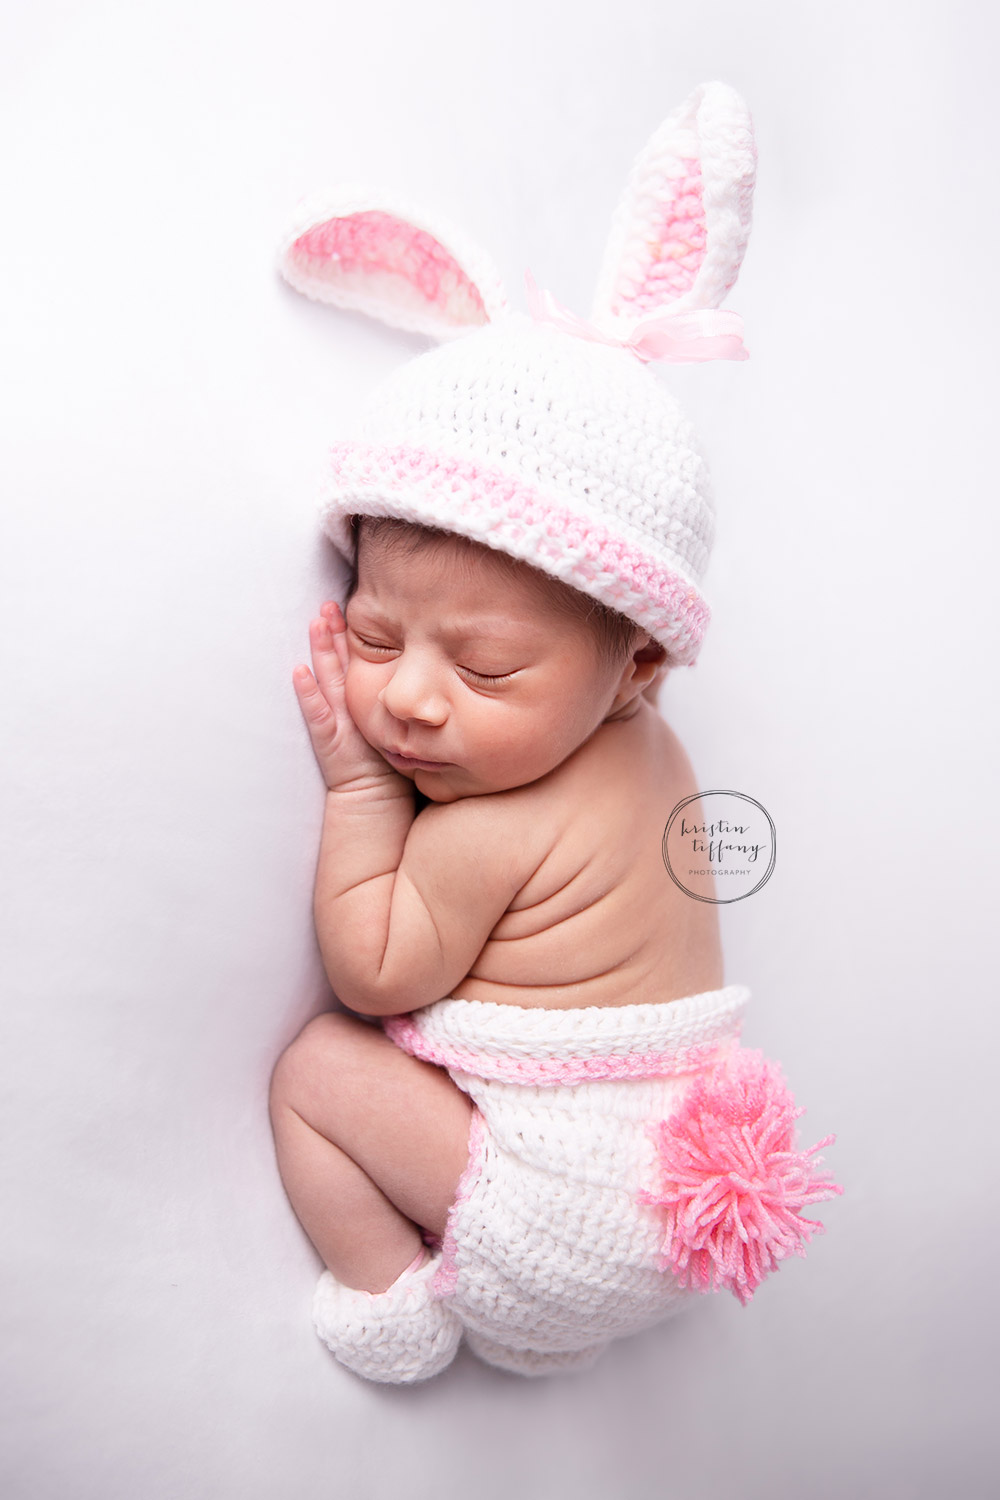 a photo of a baby girl in a bunny costume